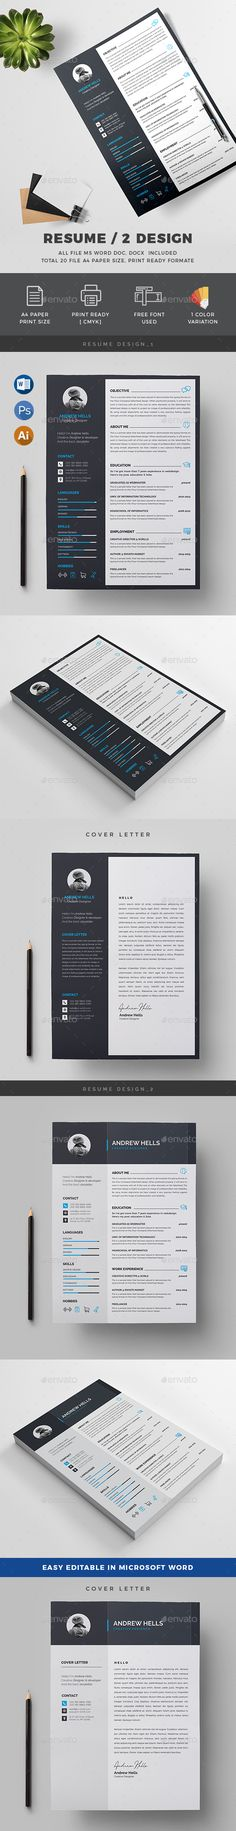 Resume Template - A4 Paper & US Letter Size - PSD, Vector EPS, AI Illustrator, DOCX and DOC